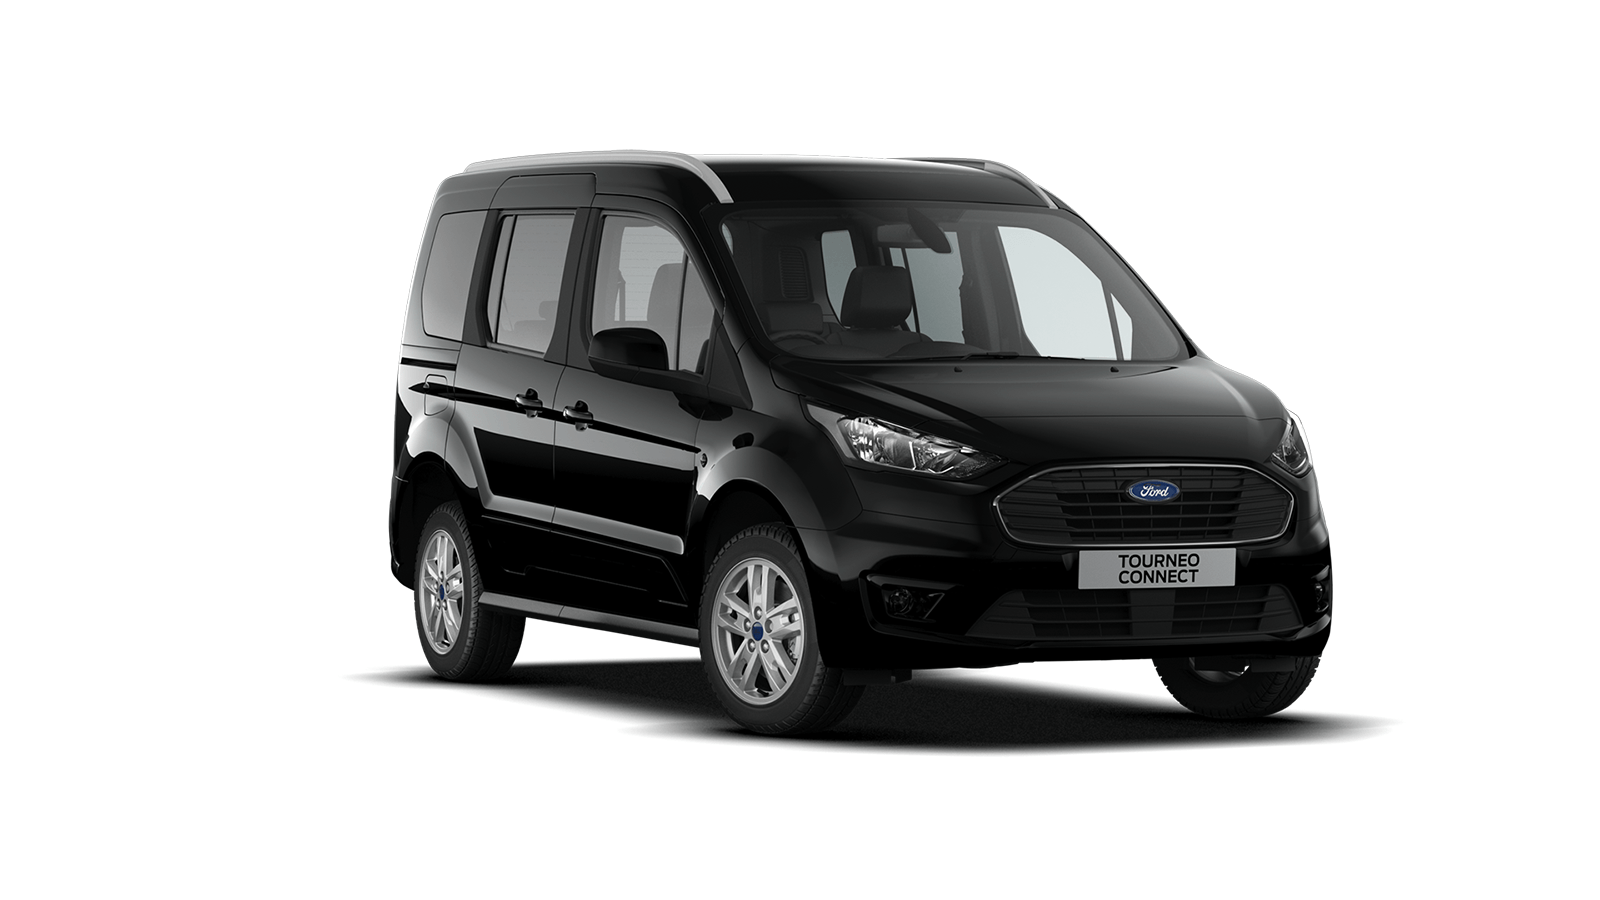 New Ford Tourneo Connect at Hawkins Motors